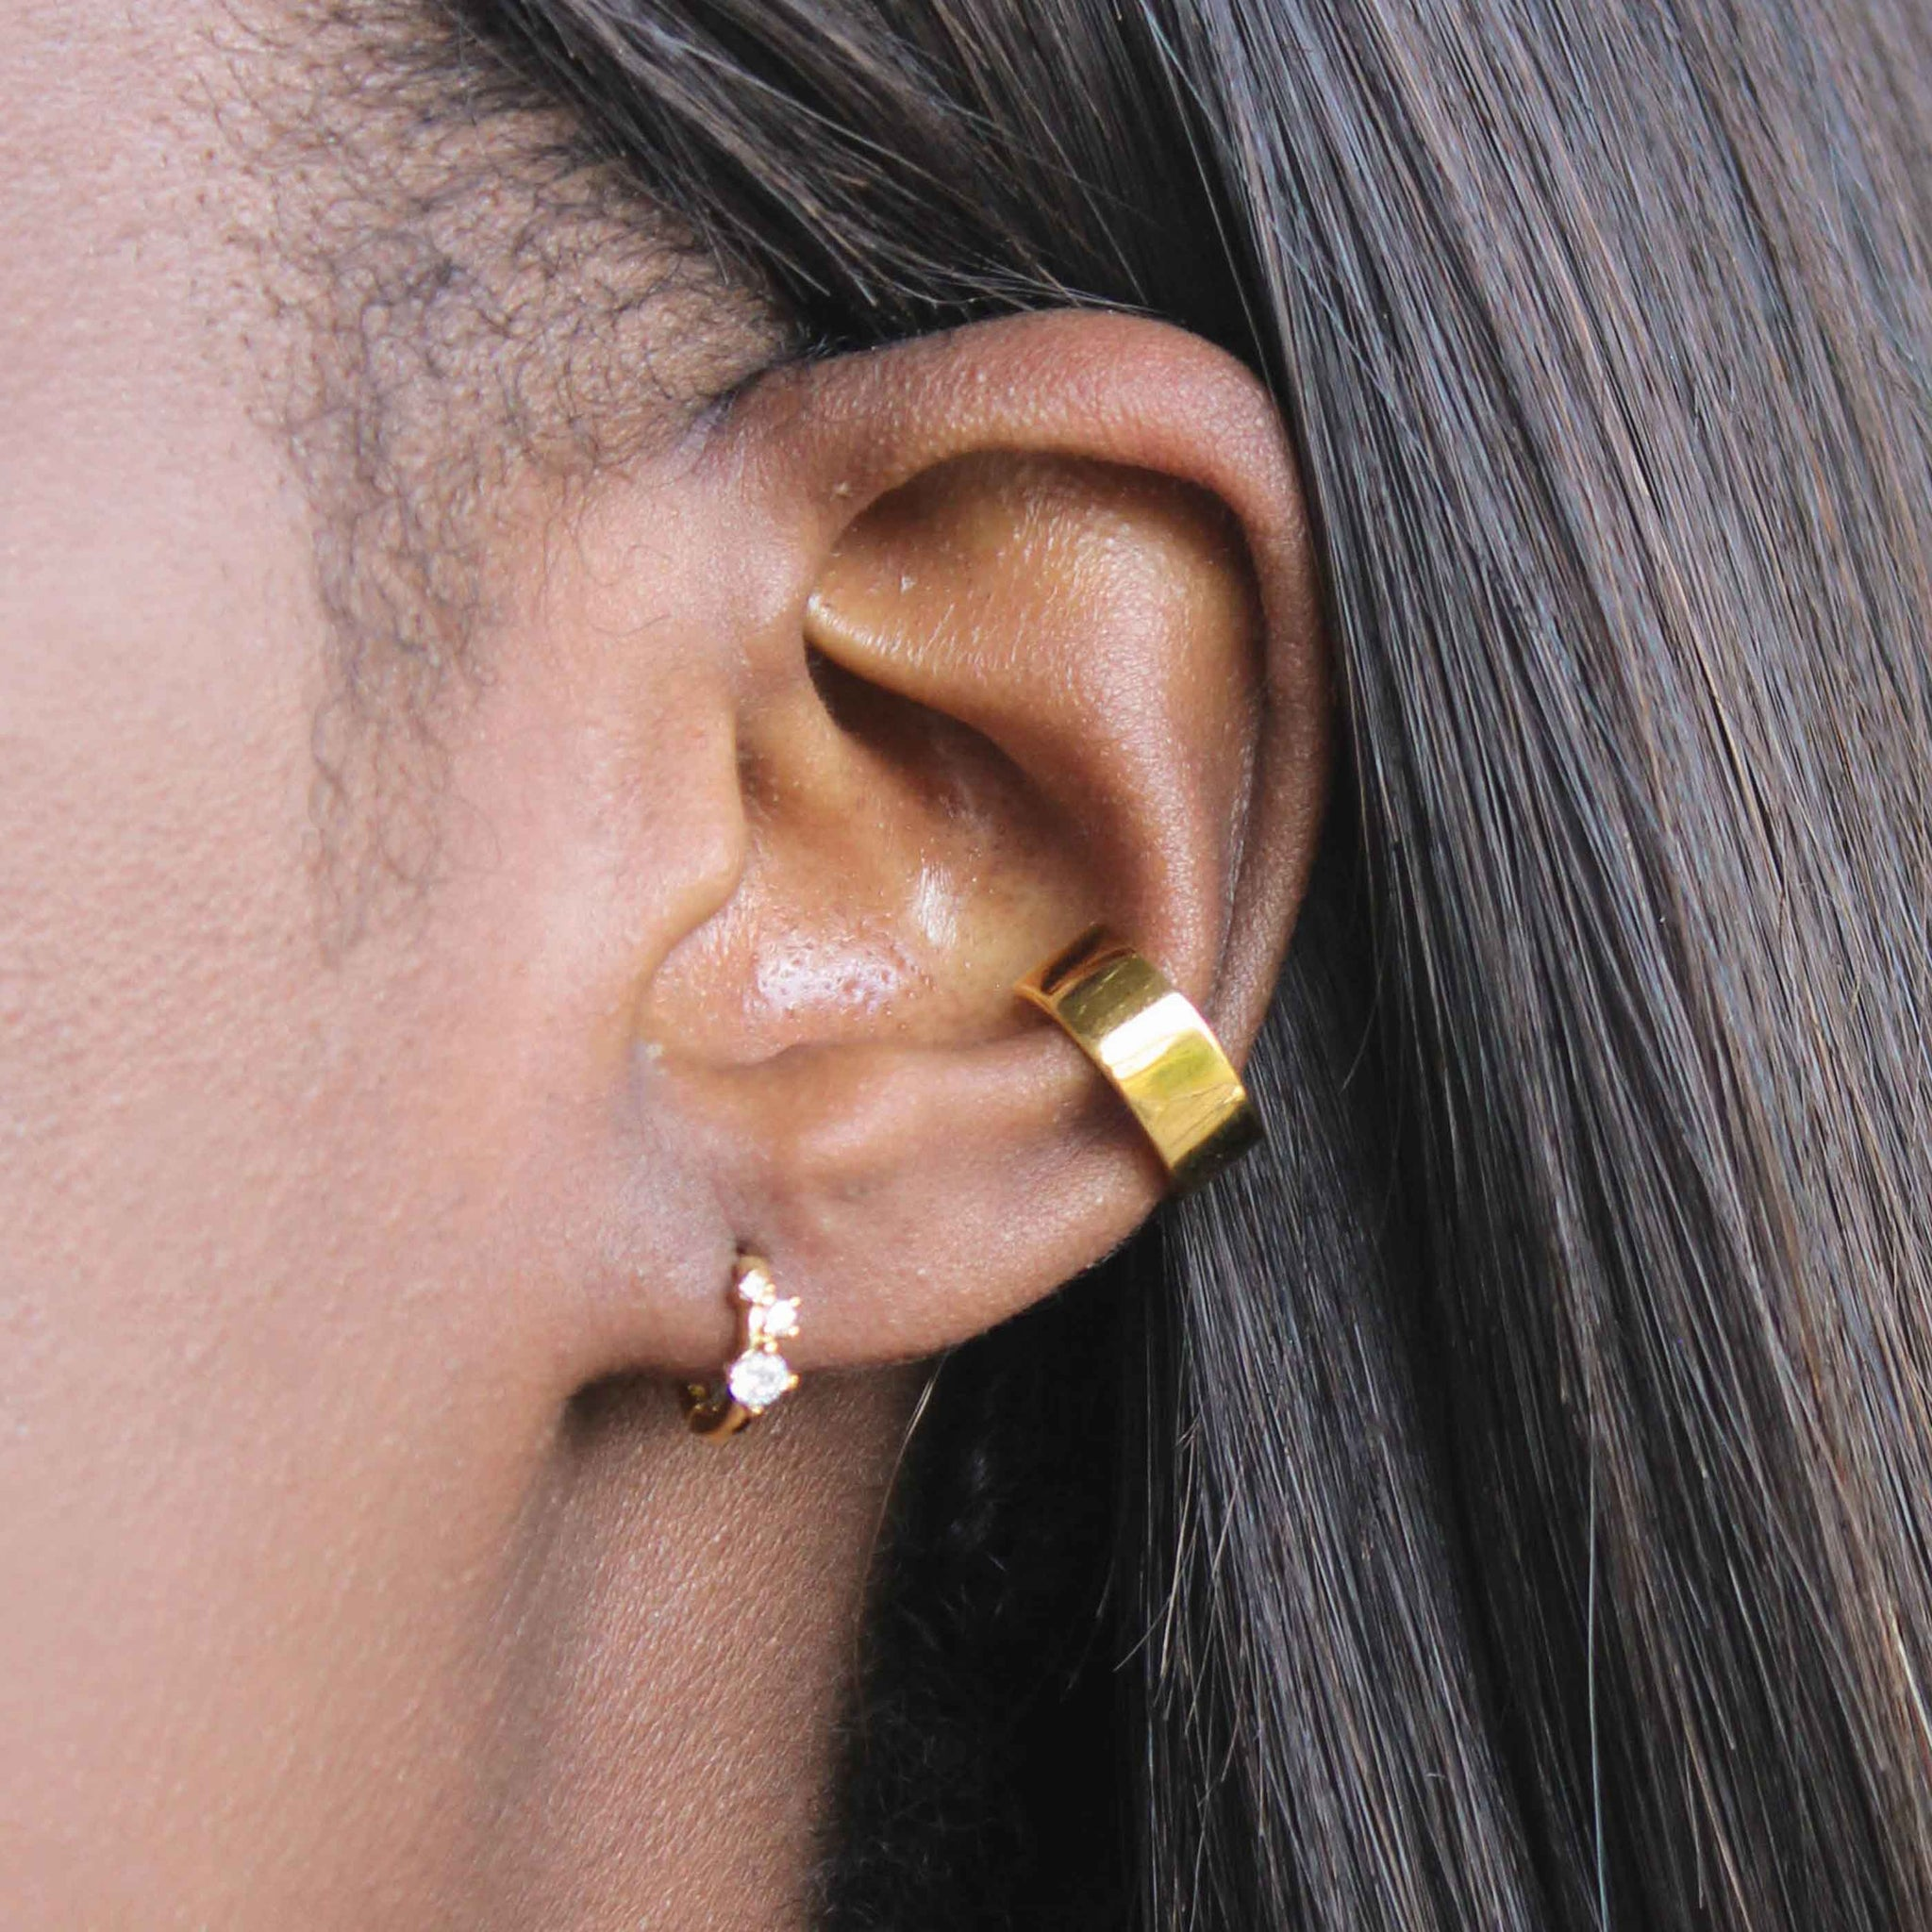 Triple Stone Huggies in Gold worn in first lobe piercing with boyfriend ear cuff